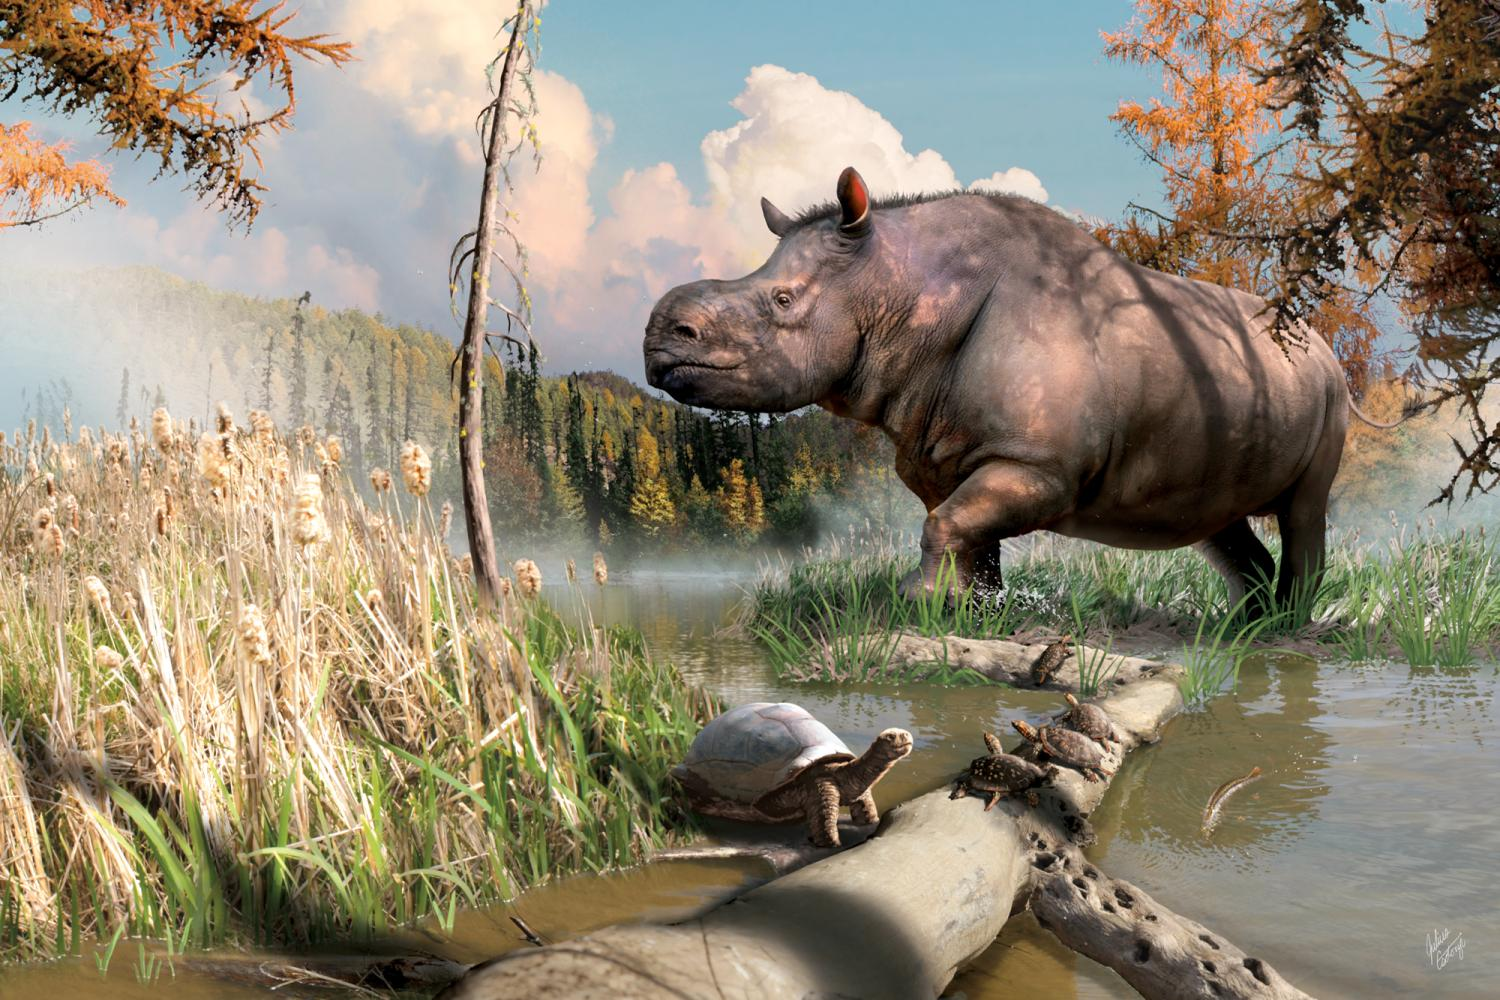 An artist's imagining of an ancient relative of today's rhinoceroses splashing through a stream next to turtles and fish in the Yukon.